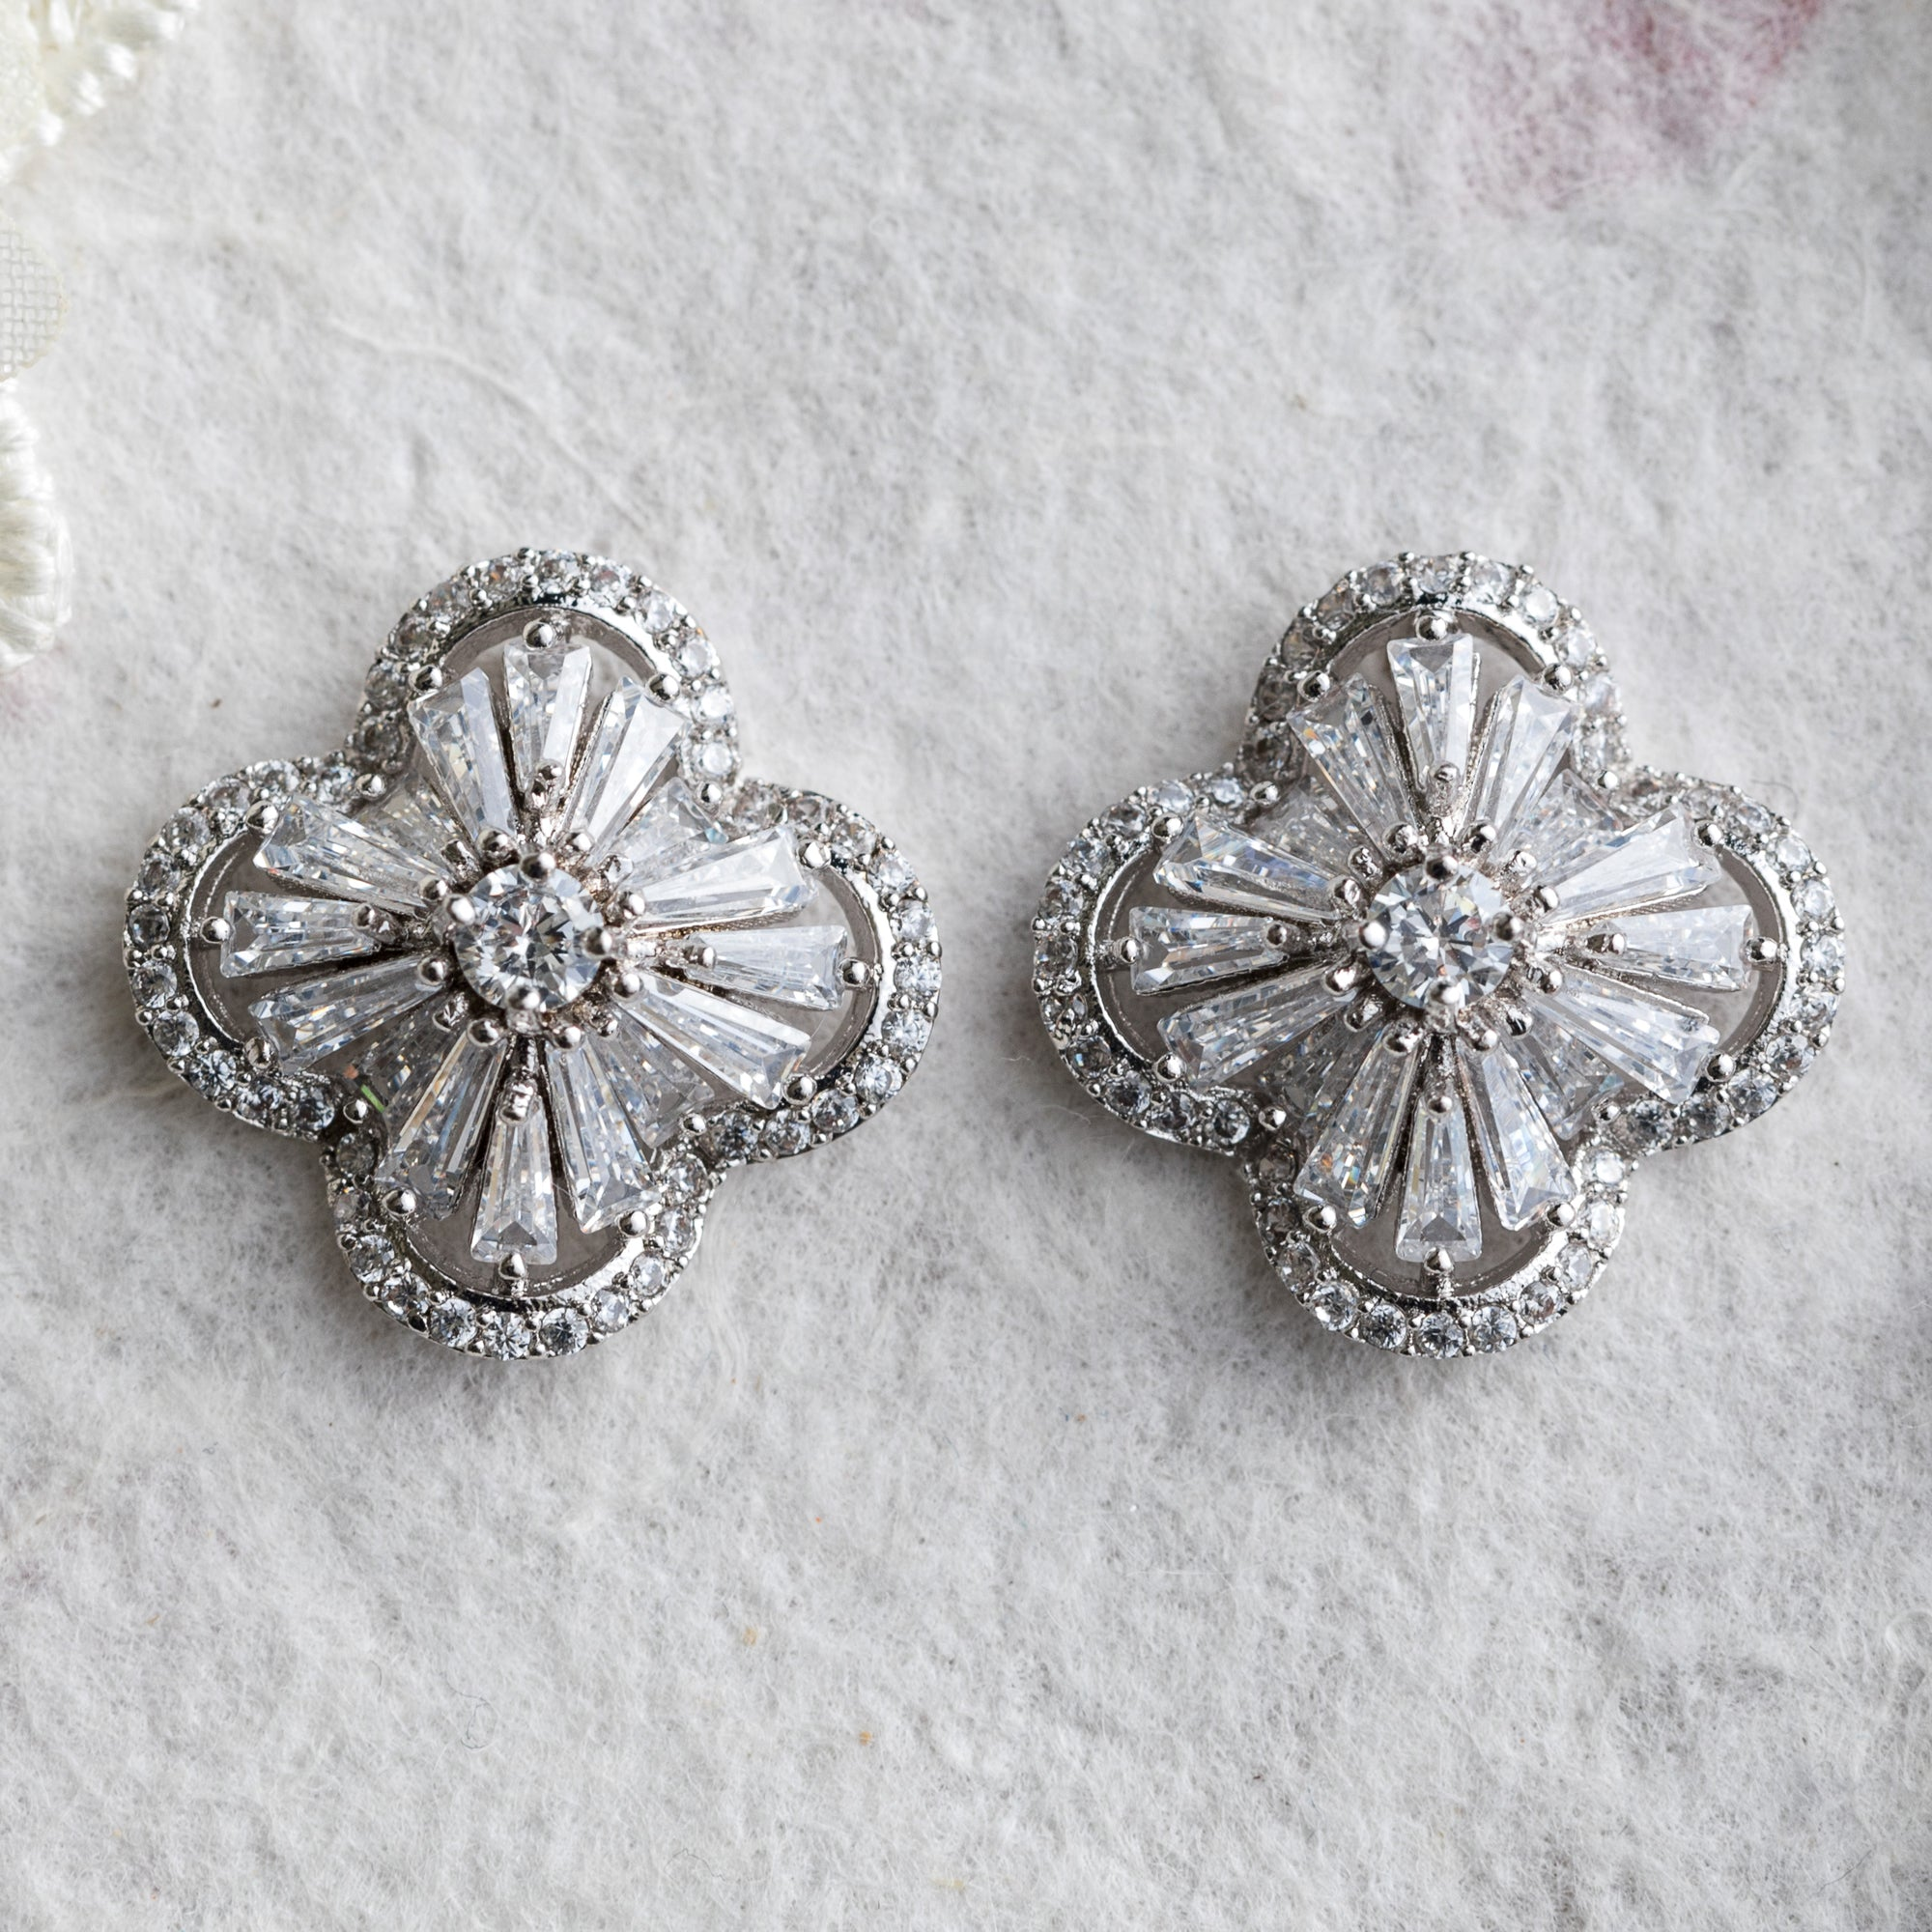 Hina silver crystal stud earrings